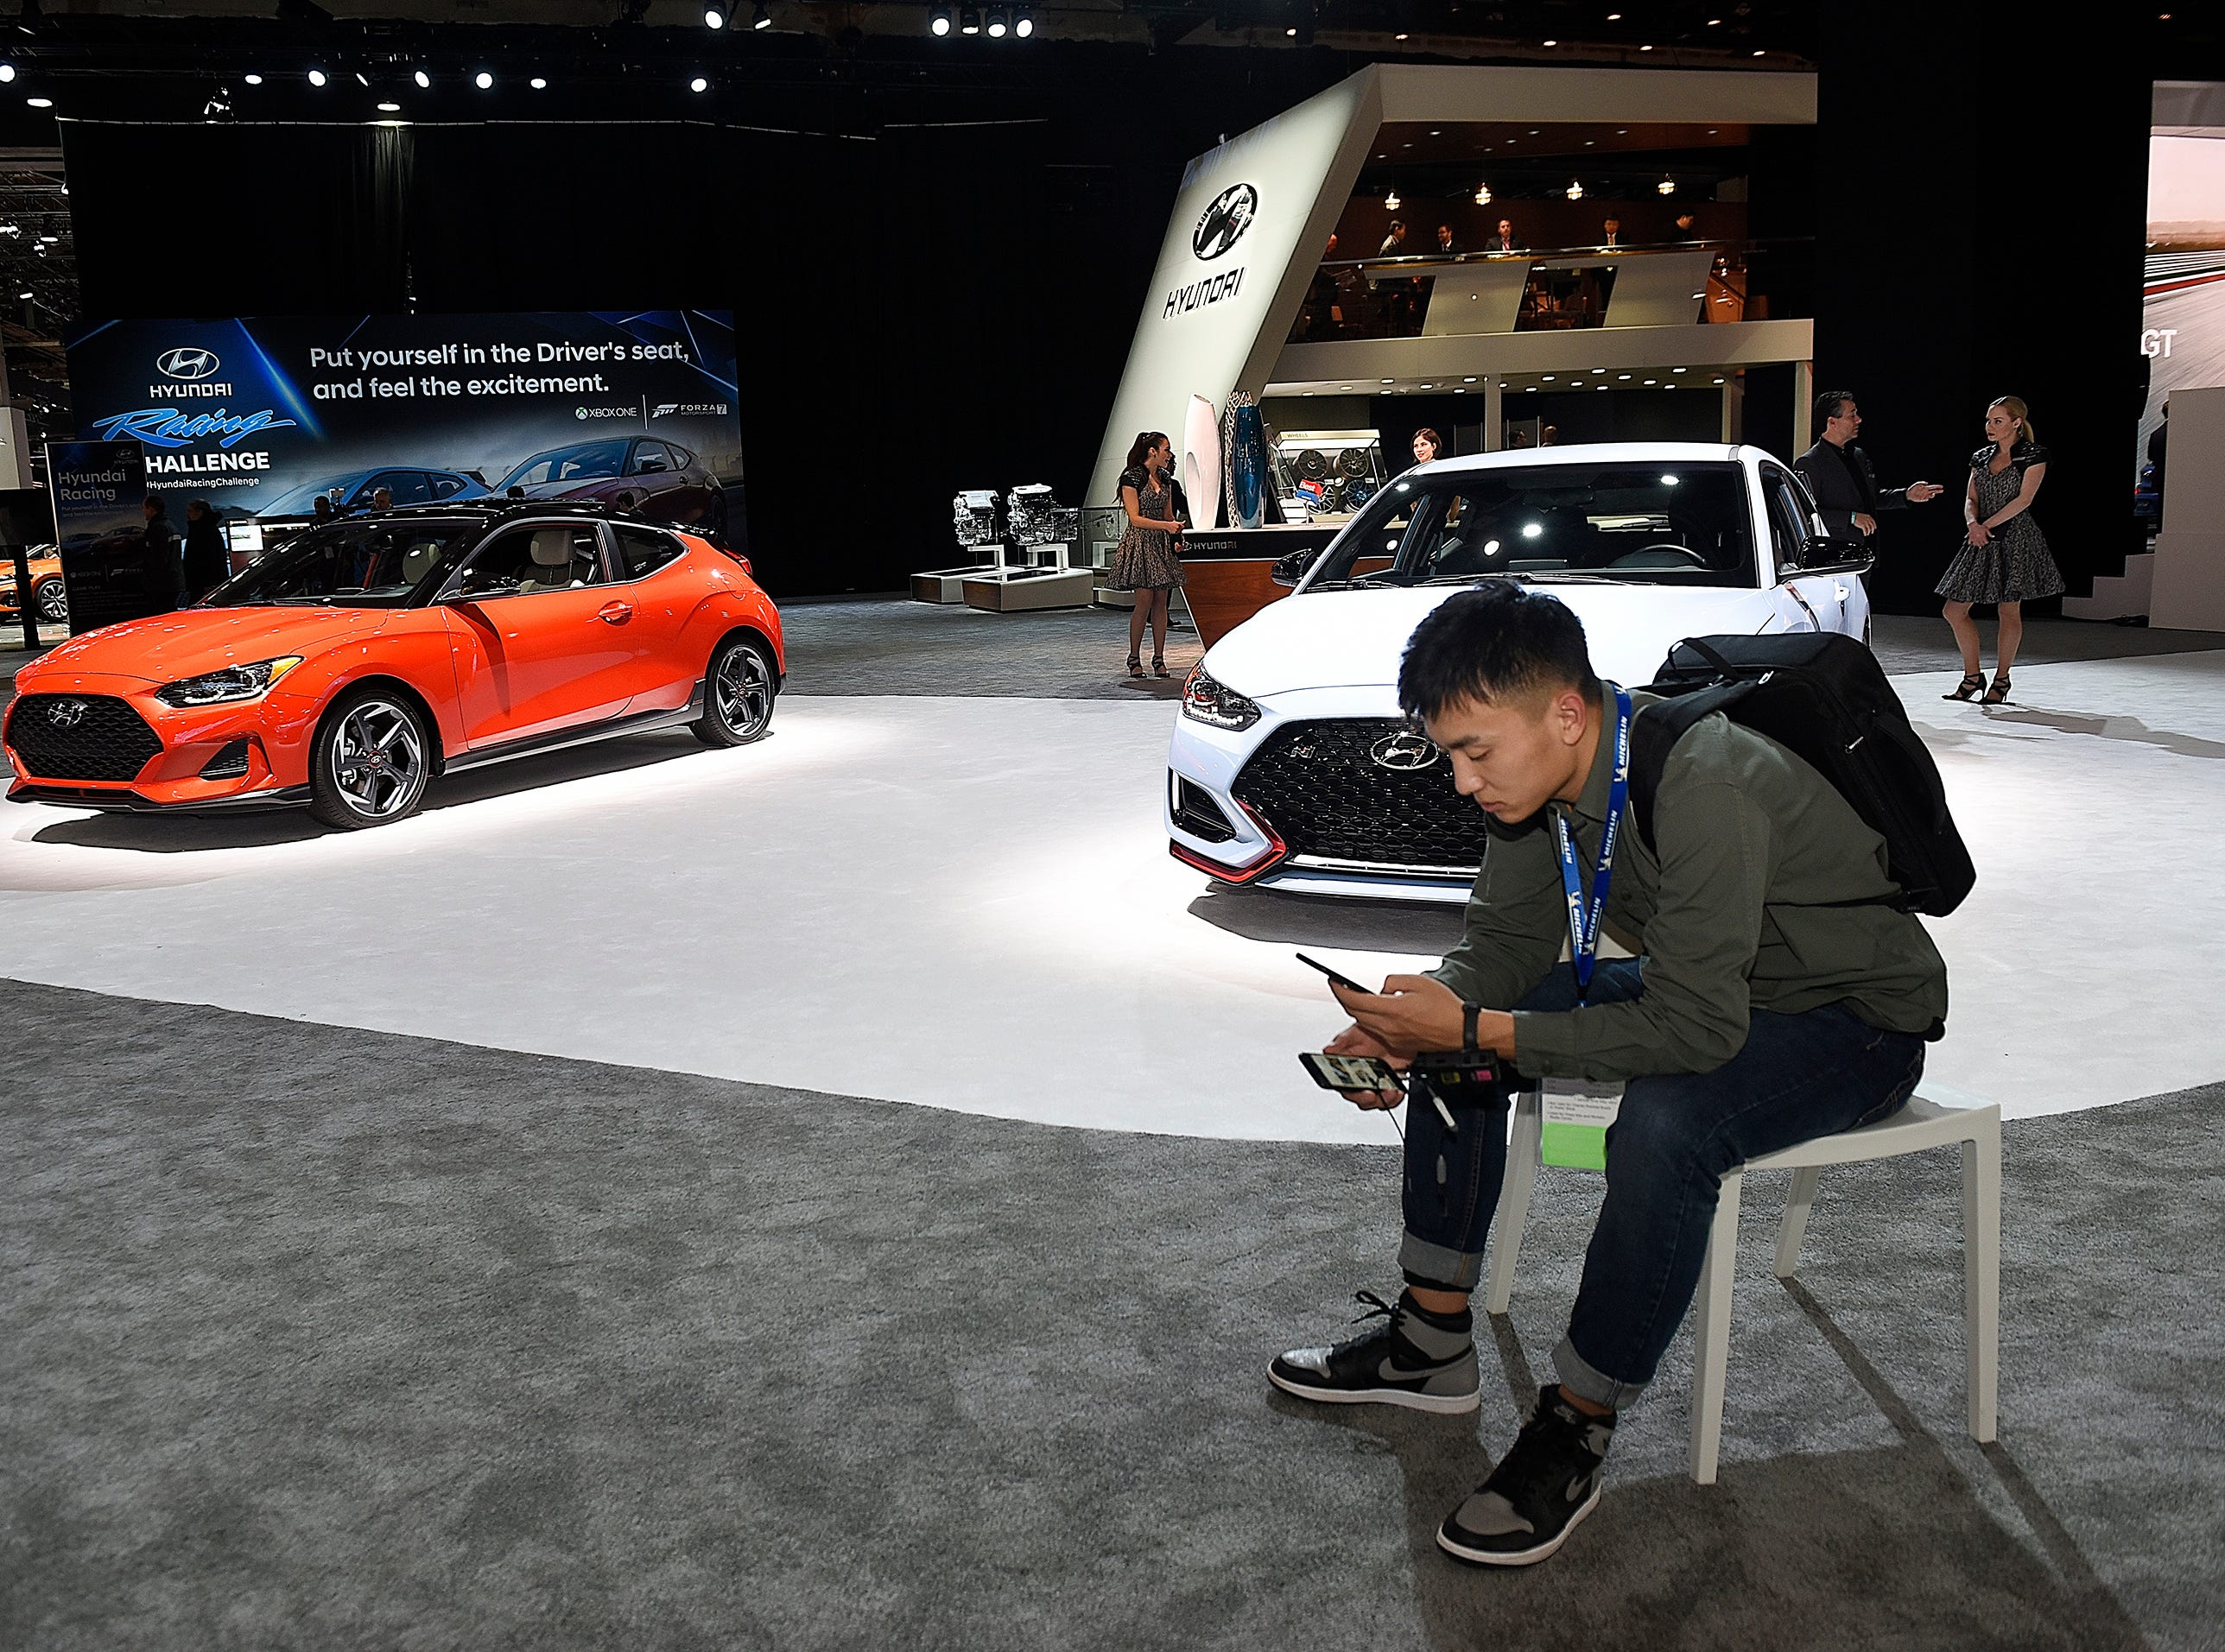 Journalist Zesong Guo, 25, of Autohome.com, Beijing, China, transfers photos from his phone inside the Hyundai exhibit.